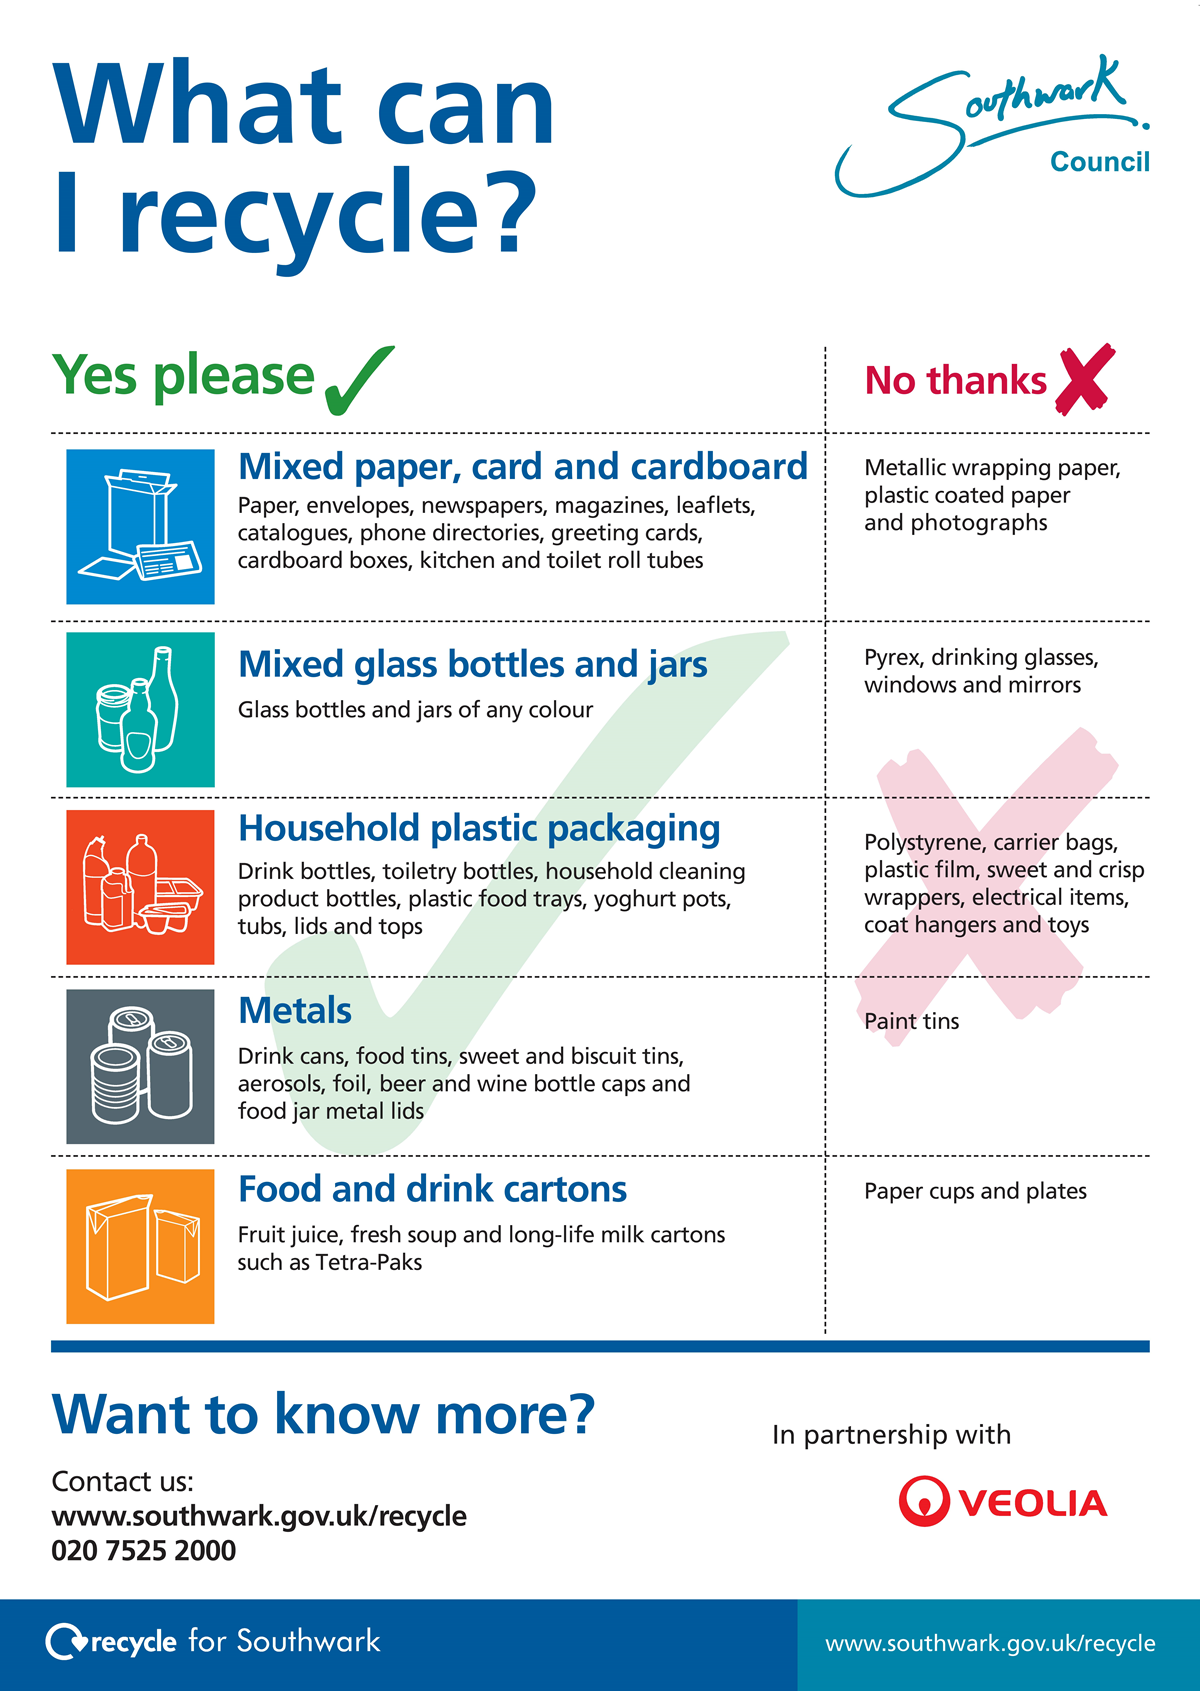 What can I recycle poster